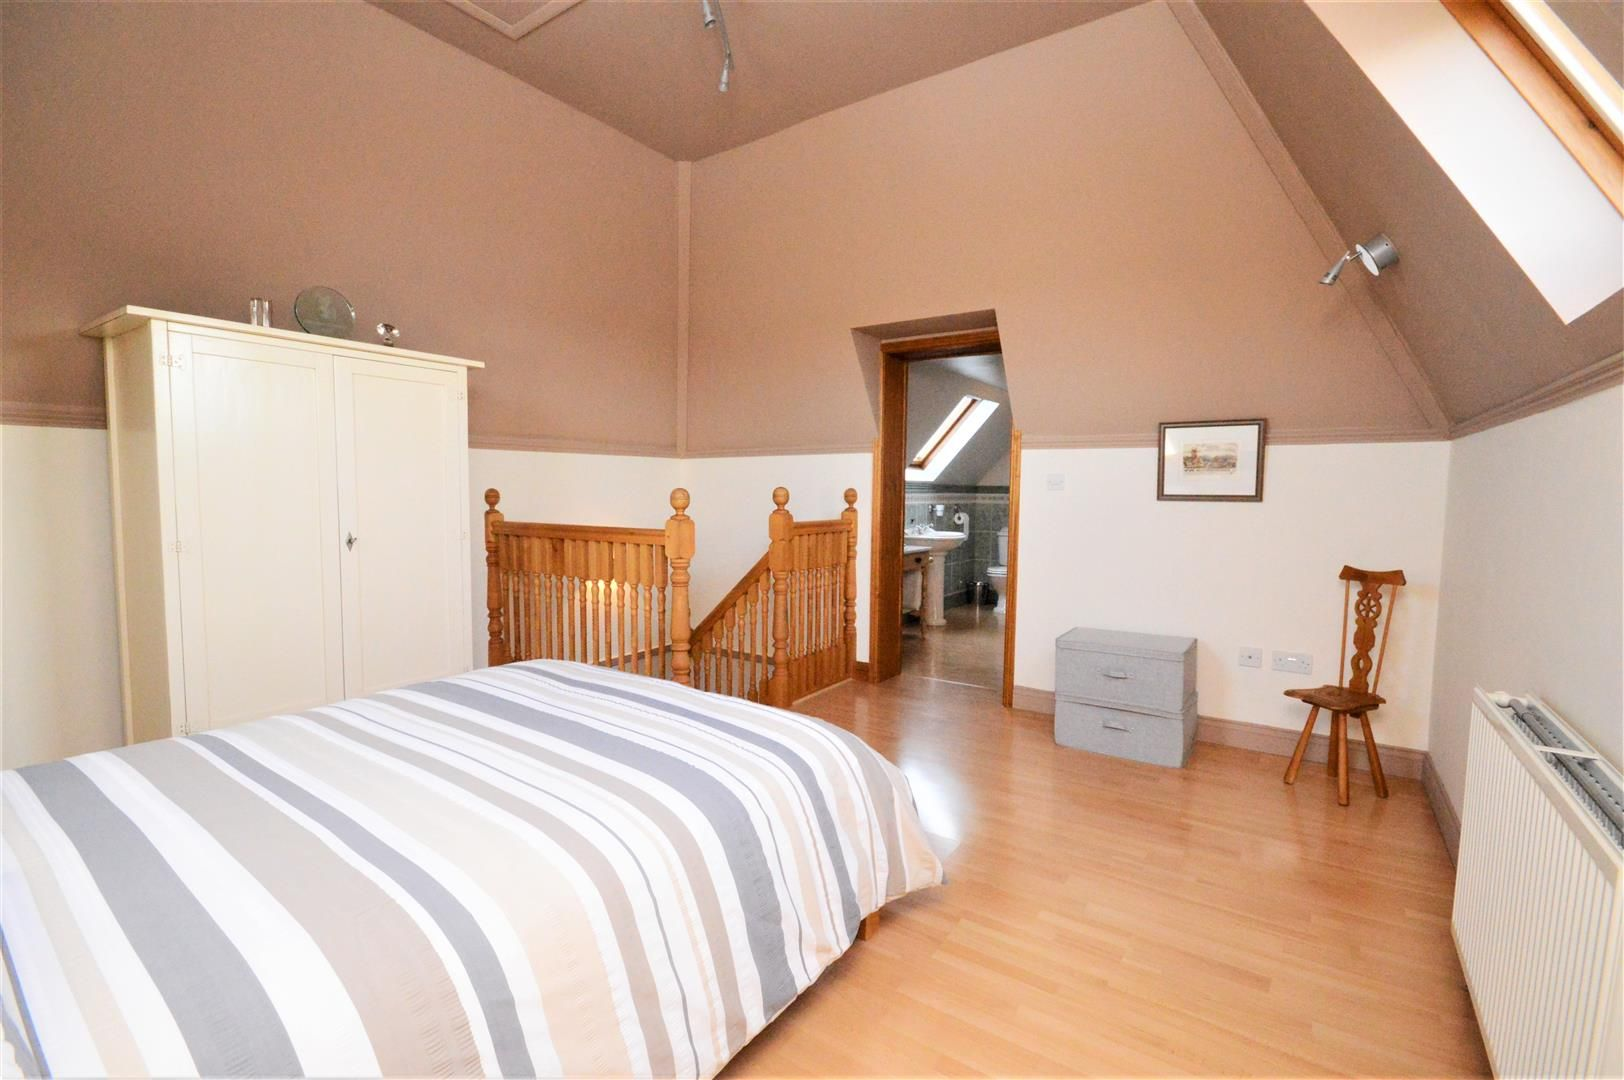 4 bed detached for sale in Marden 18